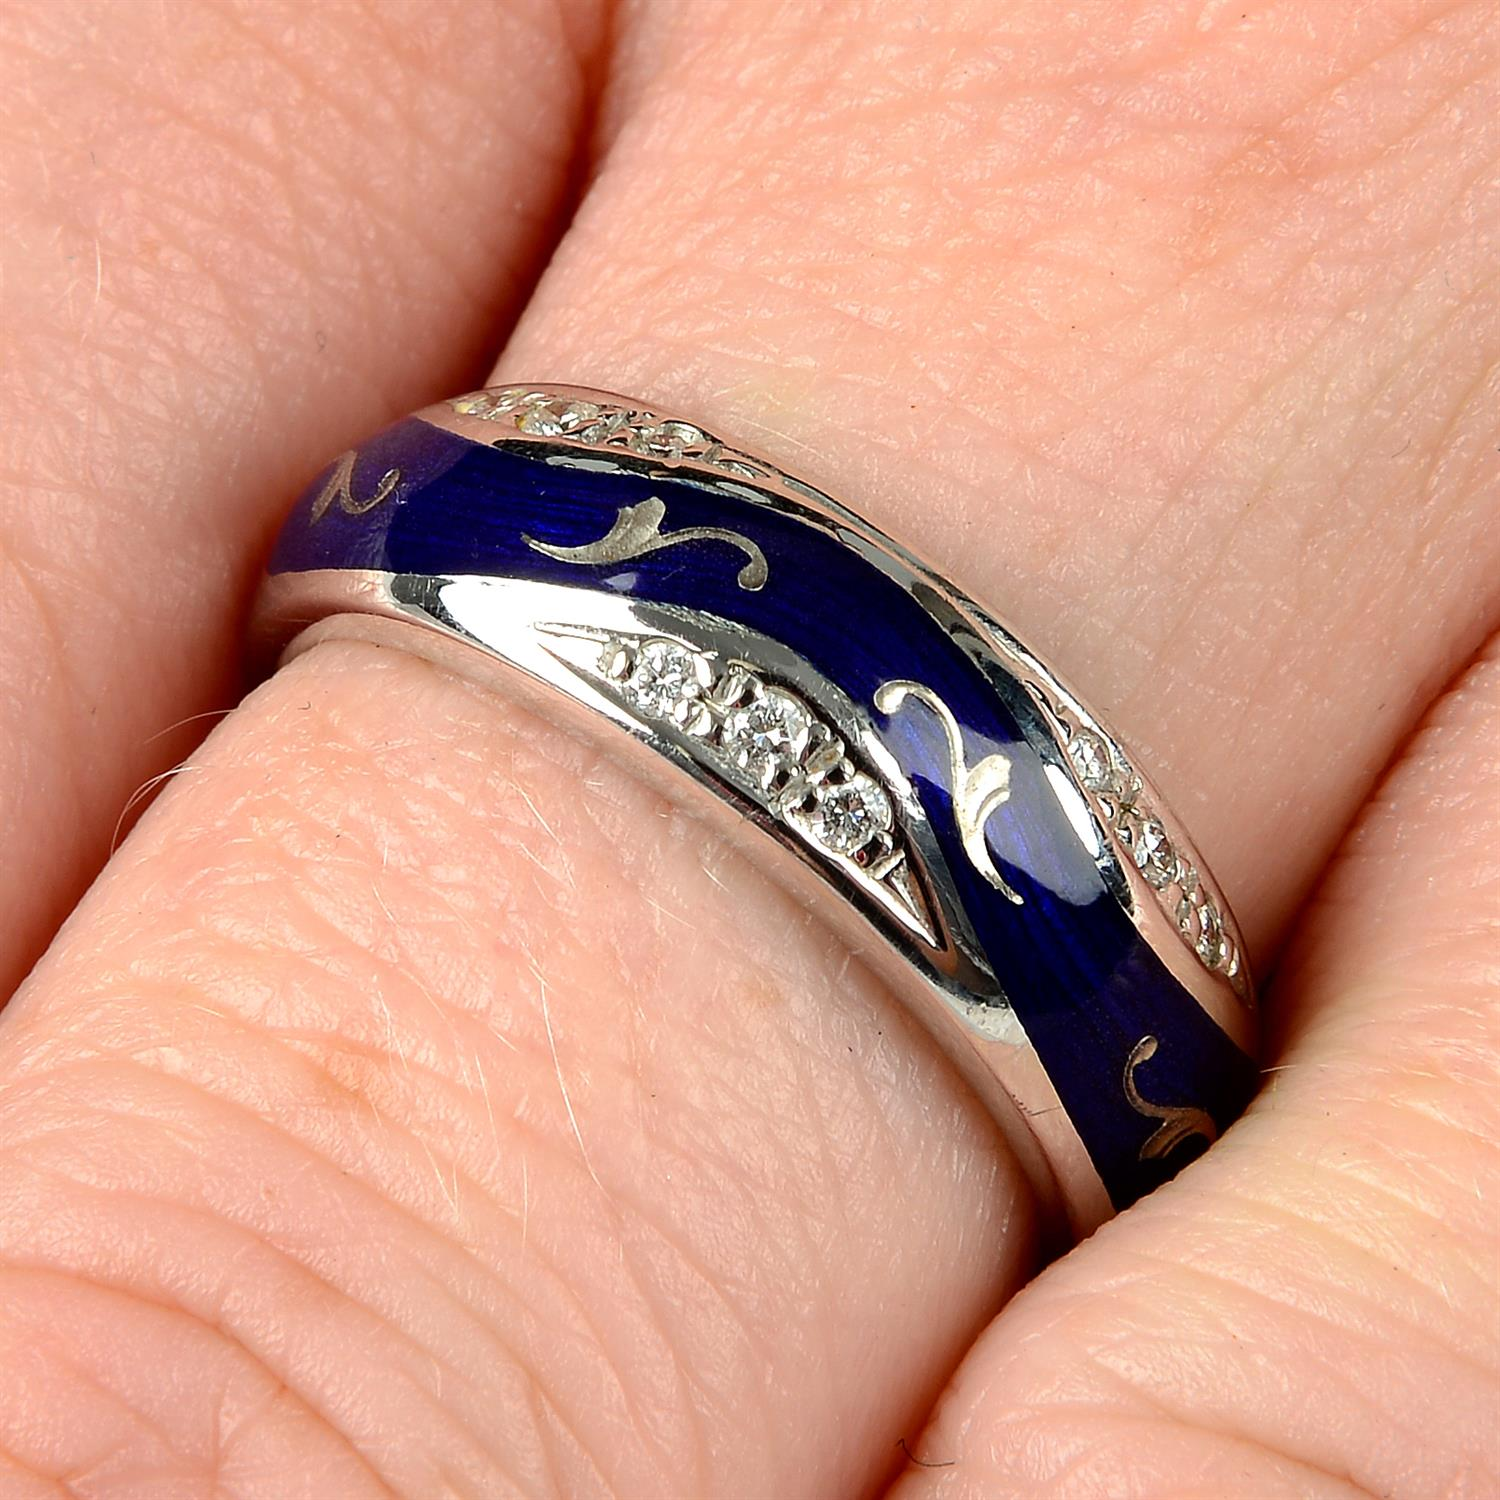 A limited edition 18ct gold diamond and blue enamel ring, by Fabergé.